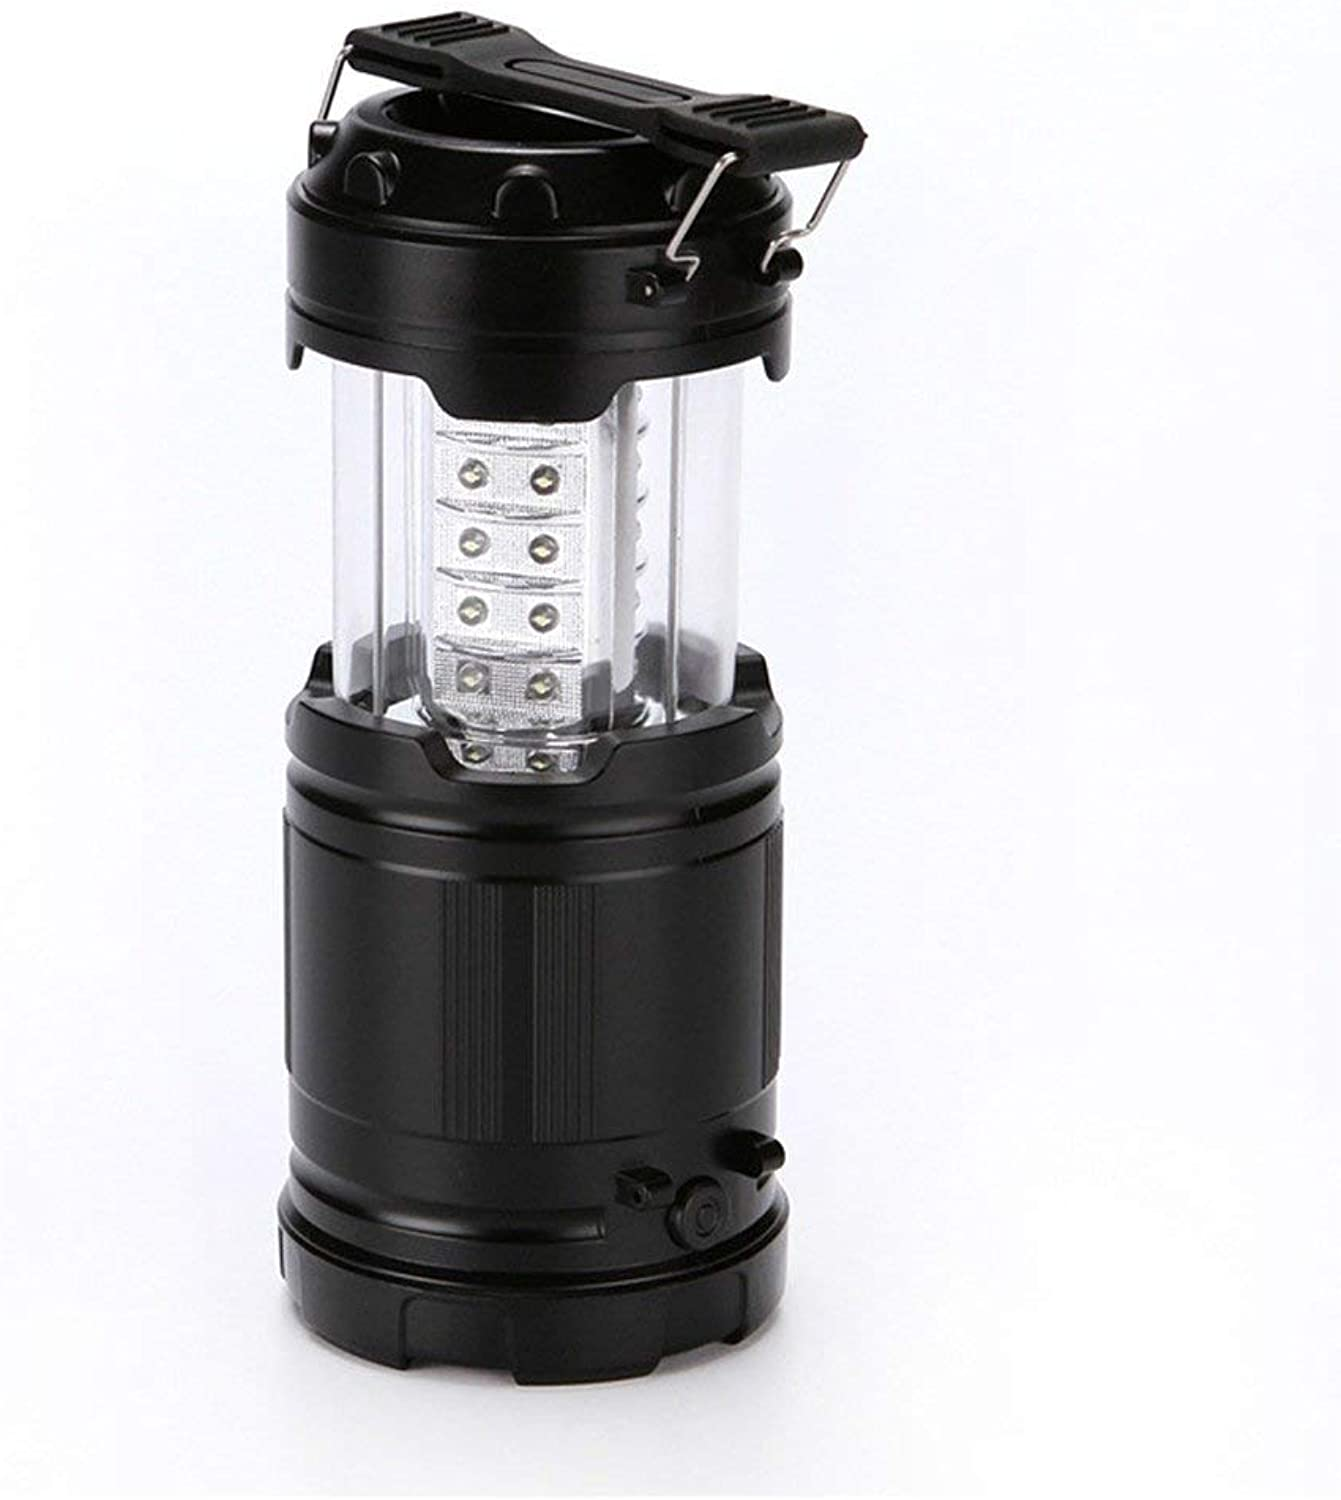 JKLL Led Camping Lantern Portable Waterproof Led Lantern Best Tent Light for Outdoor, Camping, Power Outage, Hurricane and Emergency